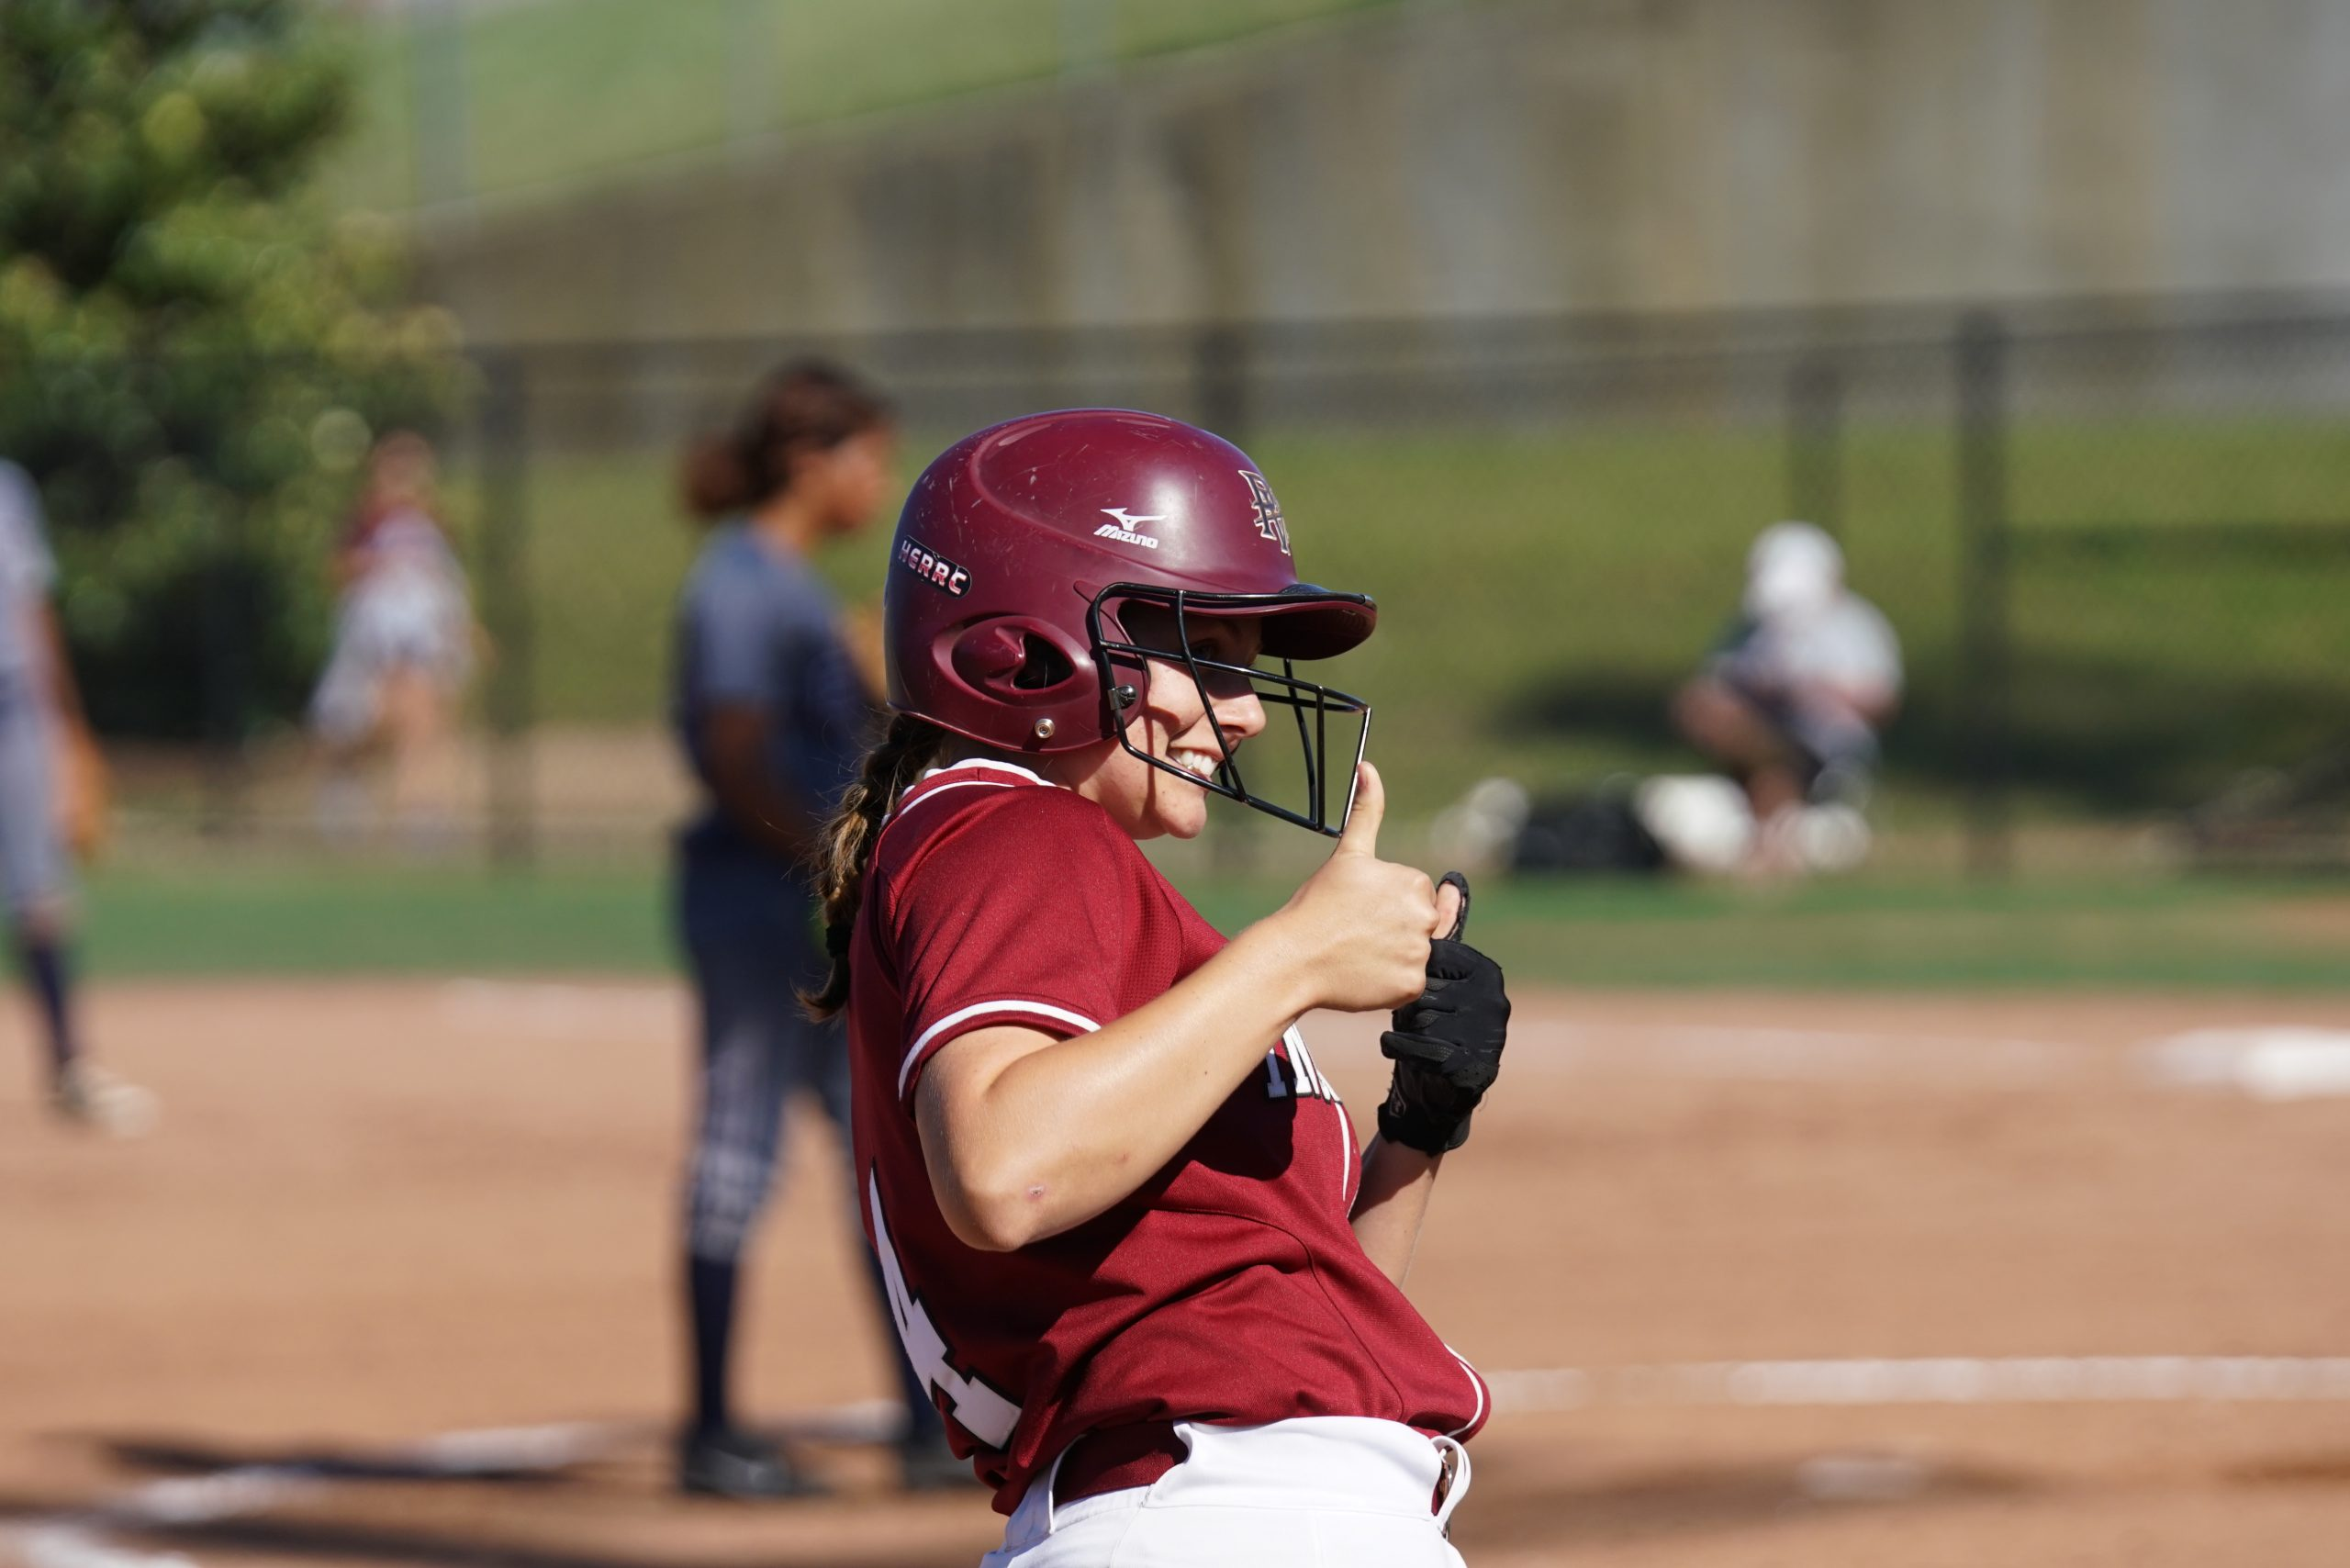 State softball tournament moved to Oxford's Choccolocco Park